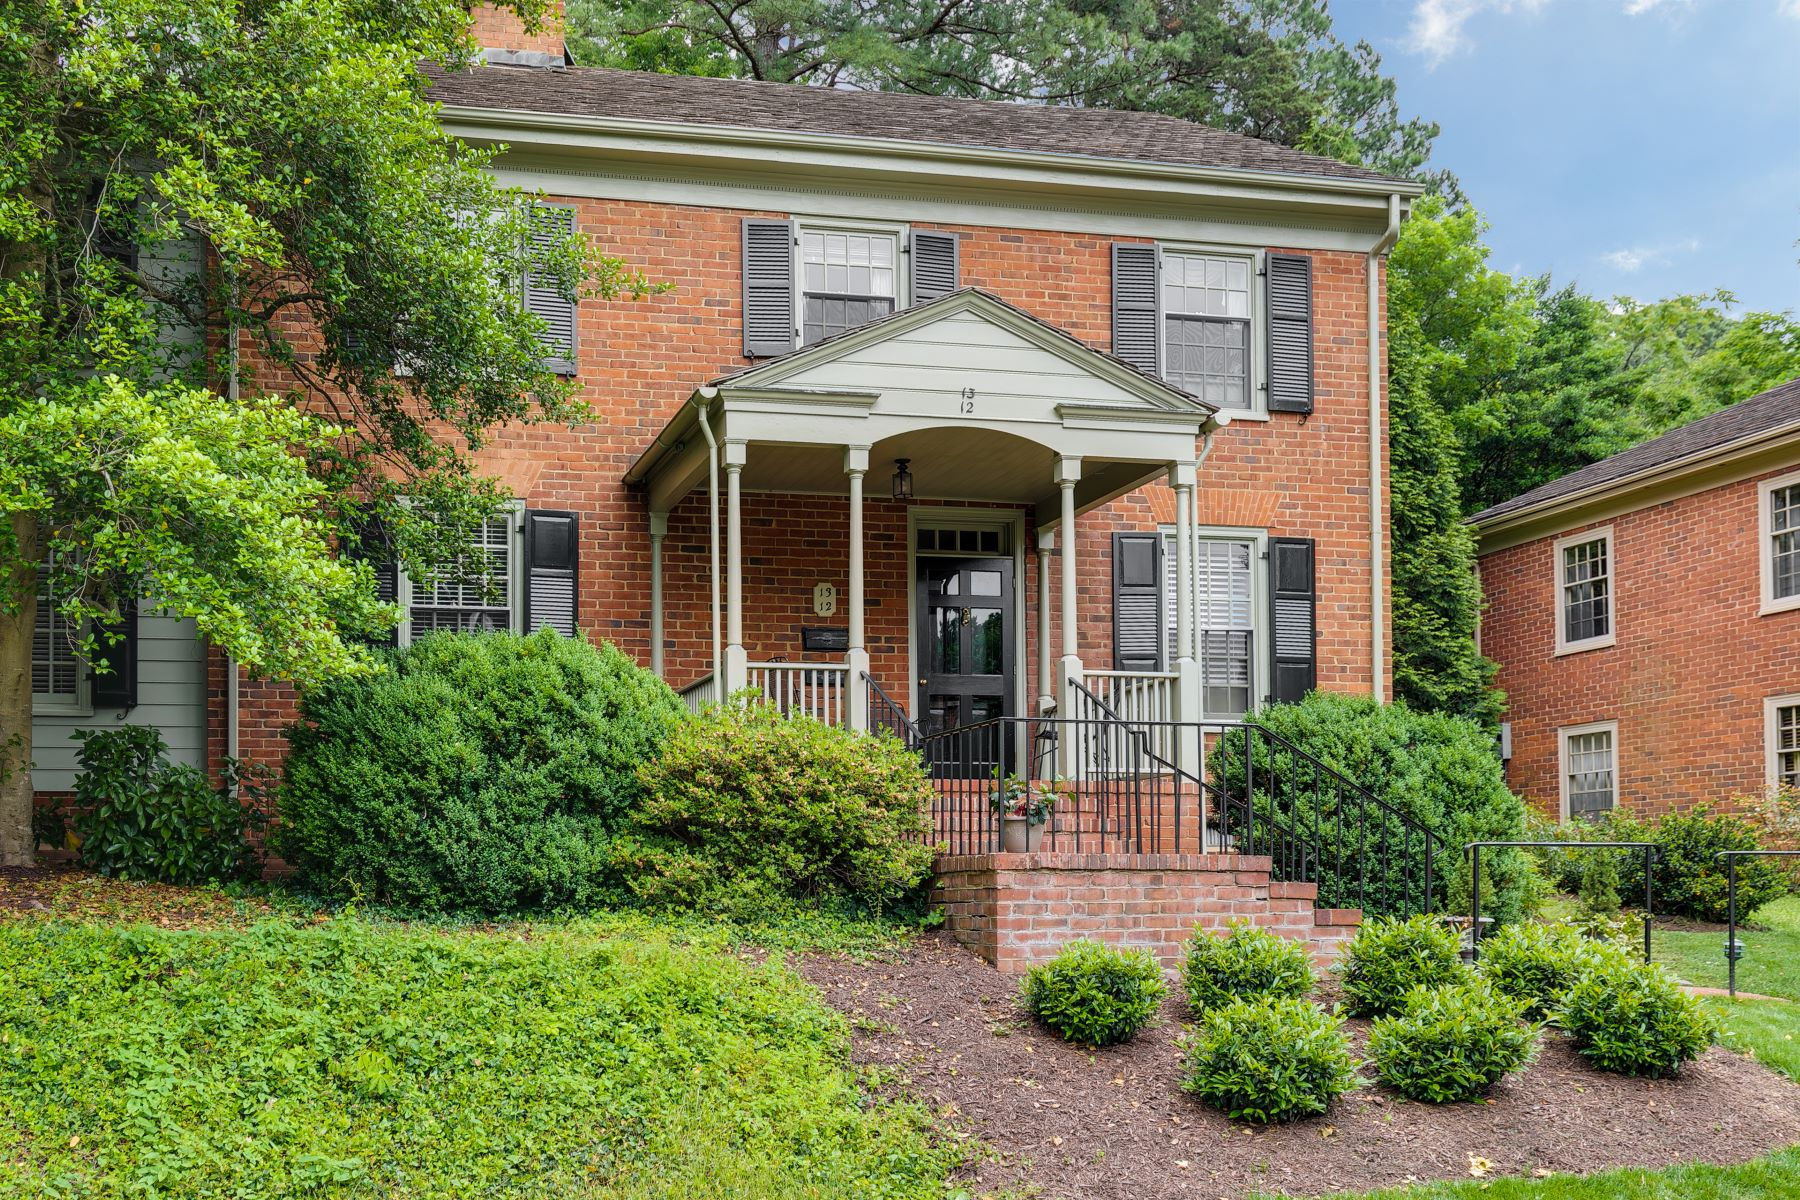 Co-op Properties for Sale at 6161 River Road, Henrico, Va, 23226 6161 River Road, Unit 12, Henrico, Virginia 23226 United States